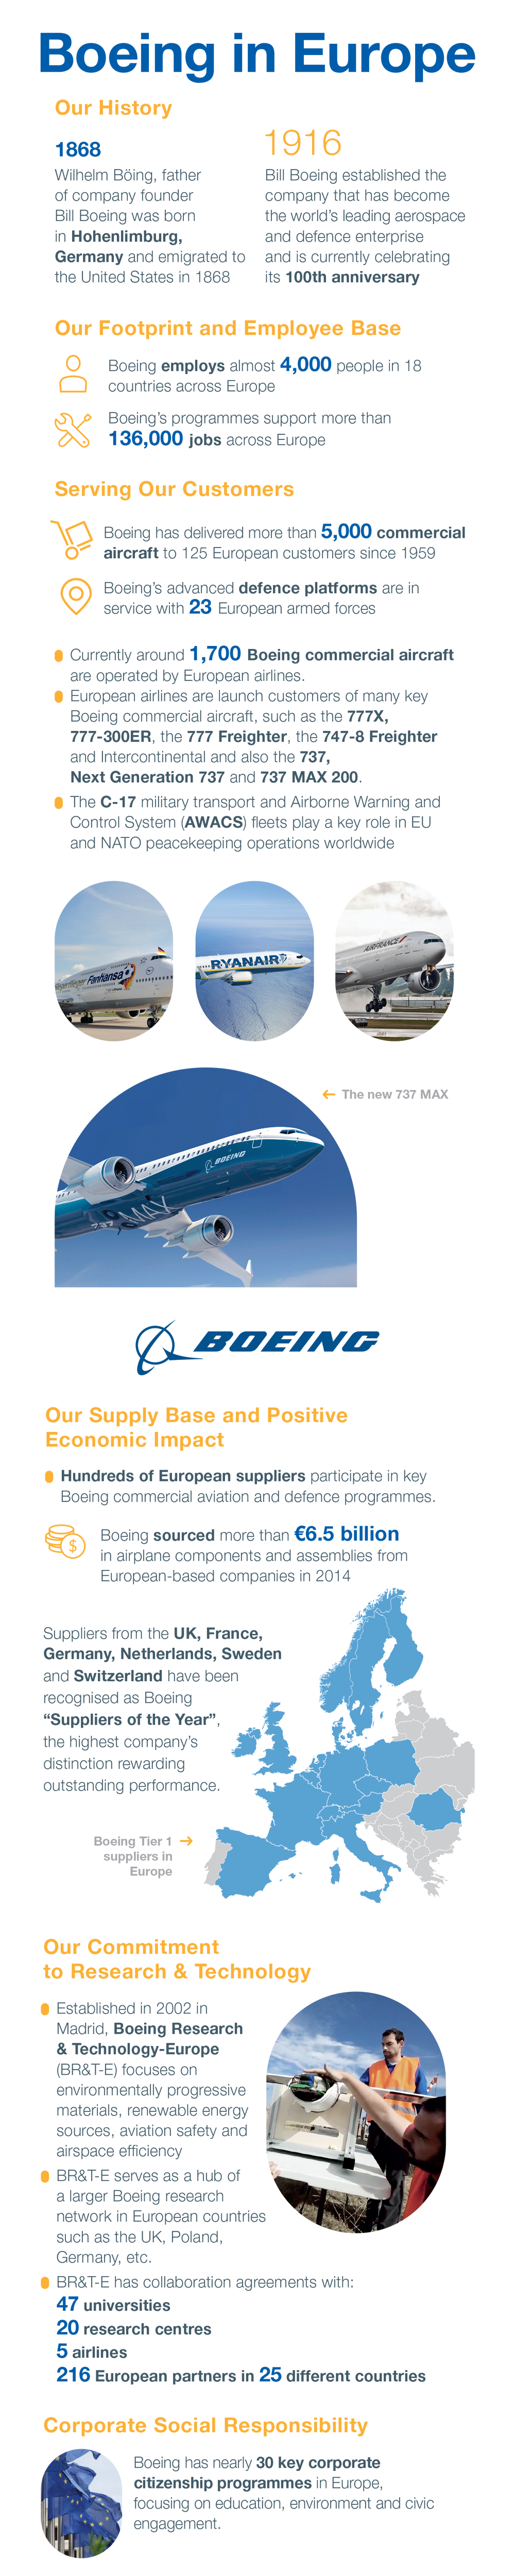 Infographic - Boeing in Europe